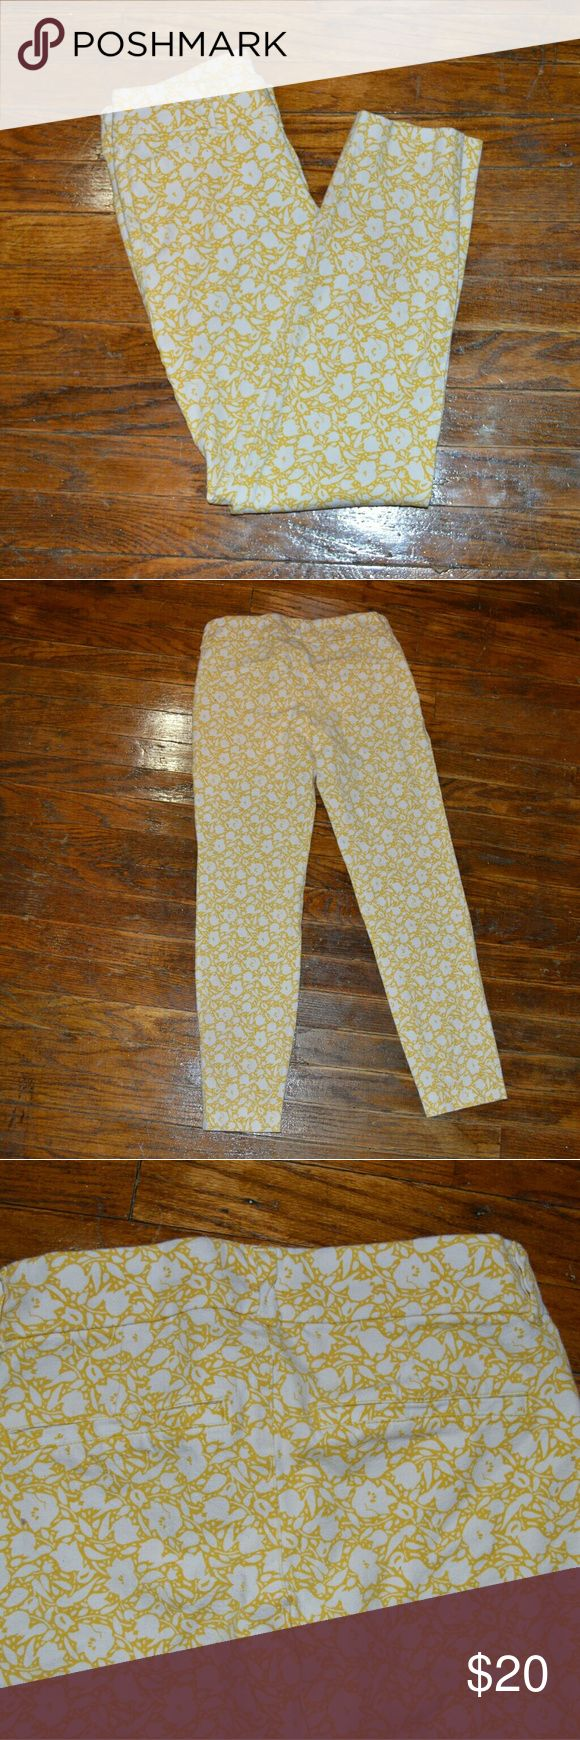 Old Navy Pixie Pants size 0 Old name The Pixie Size 0 Old Navy Jeans Skinny